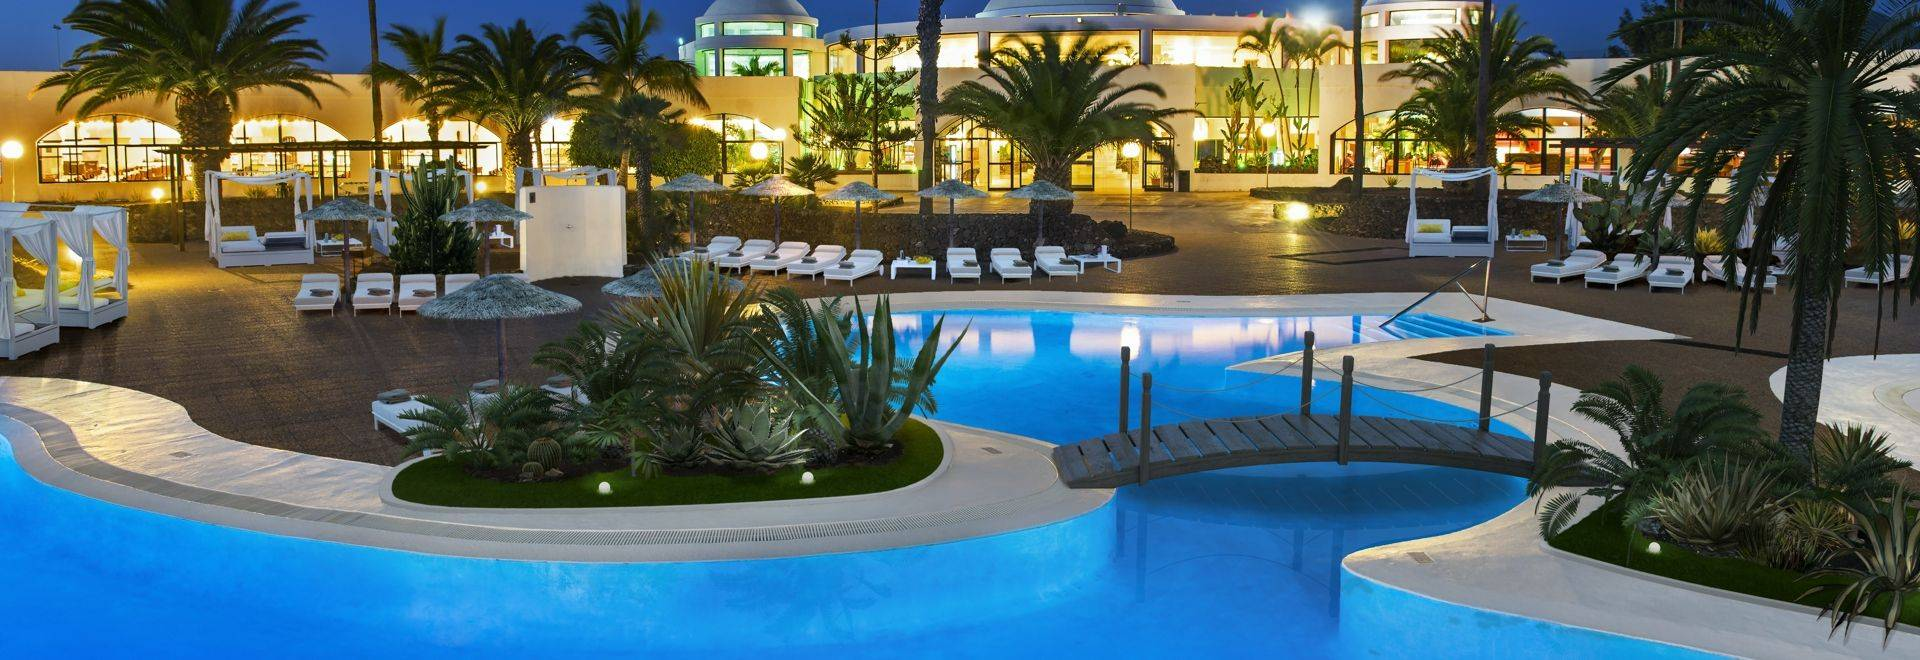 Pool Area   Night View